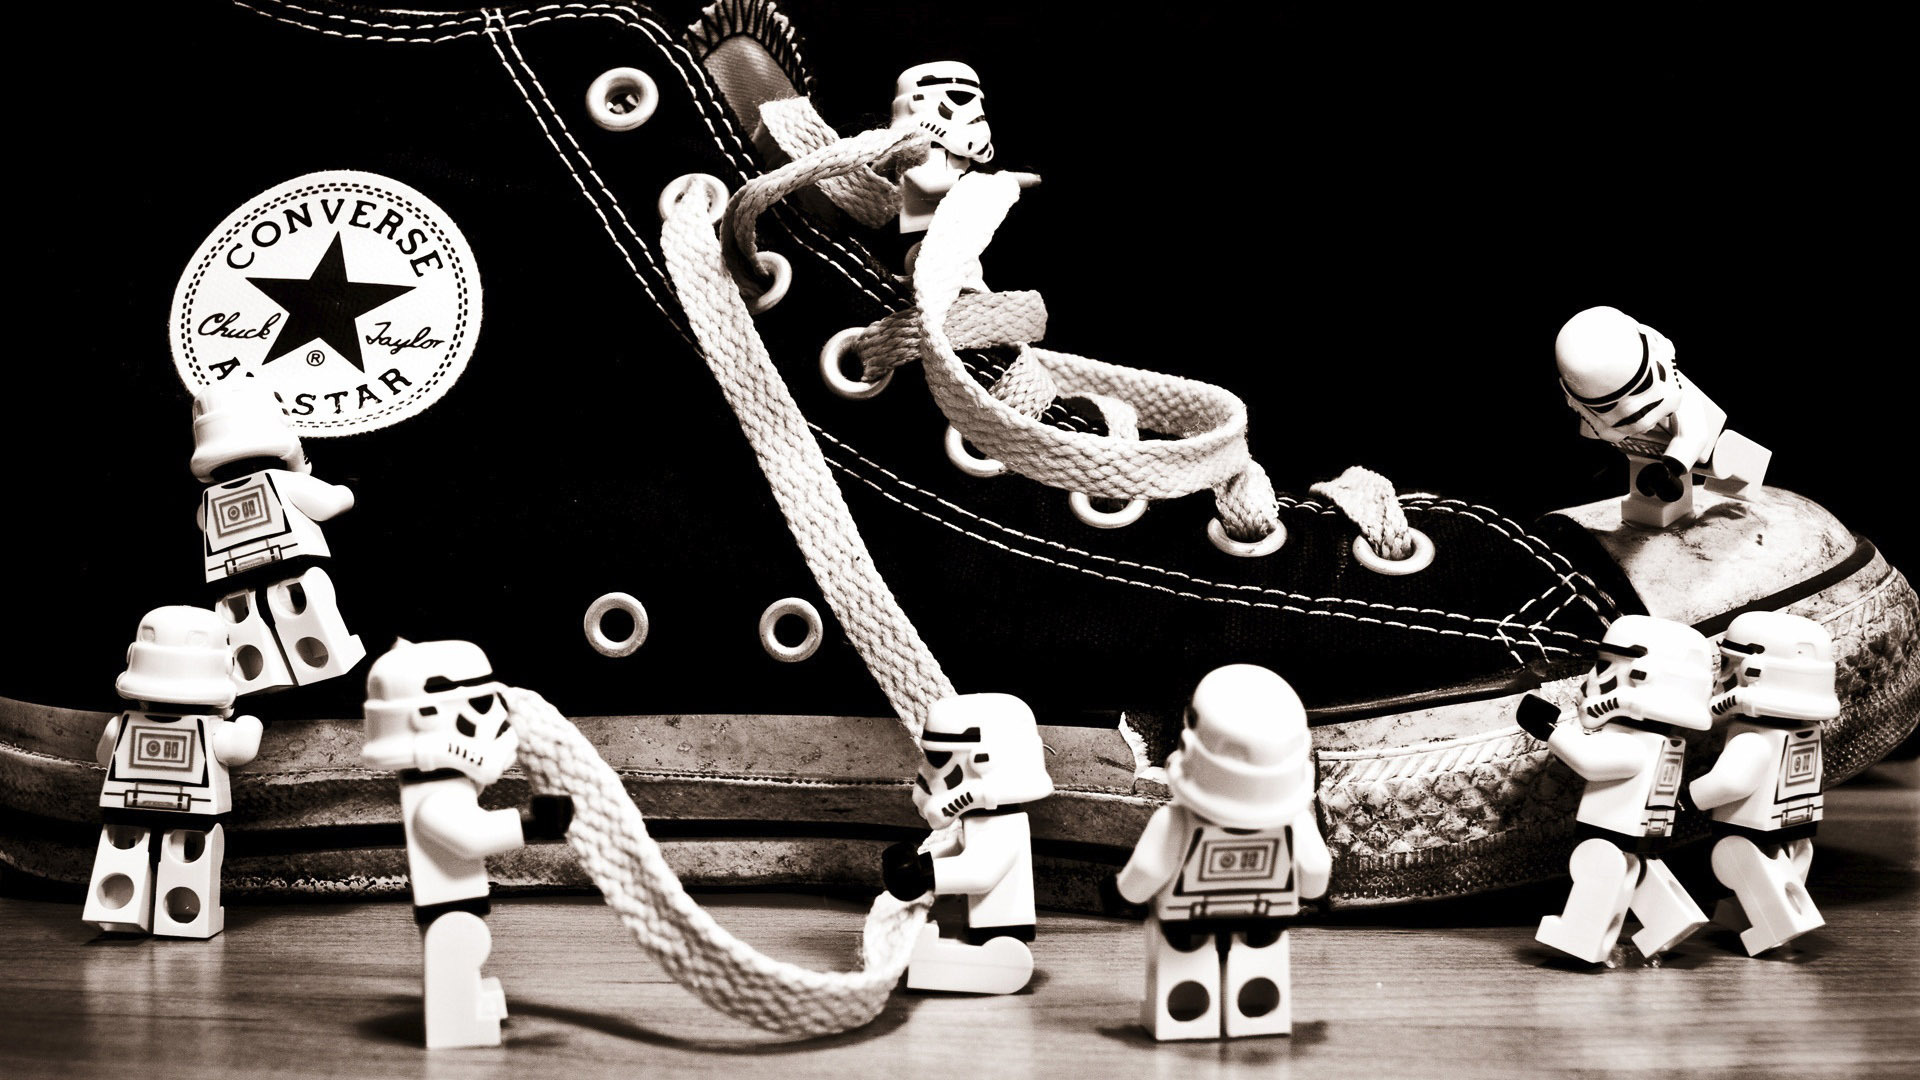 Stormtroopers playing with a sneaker